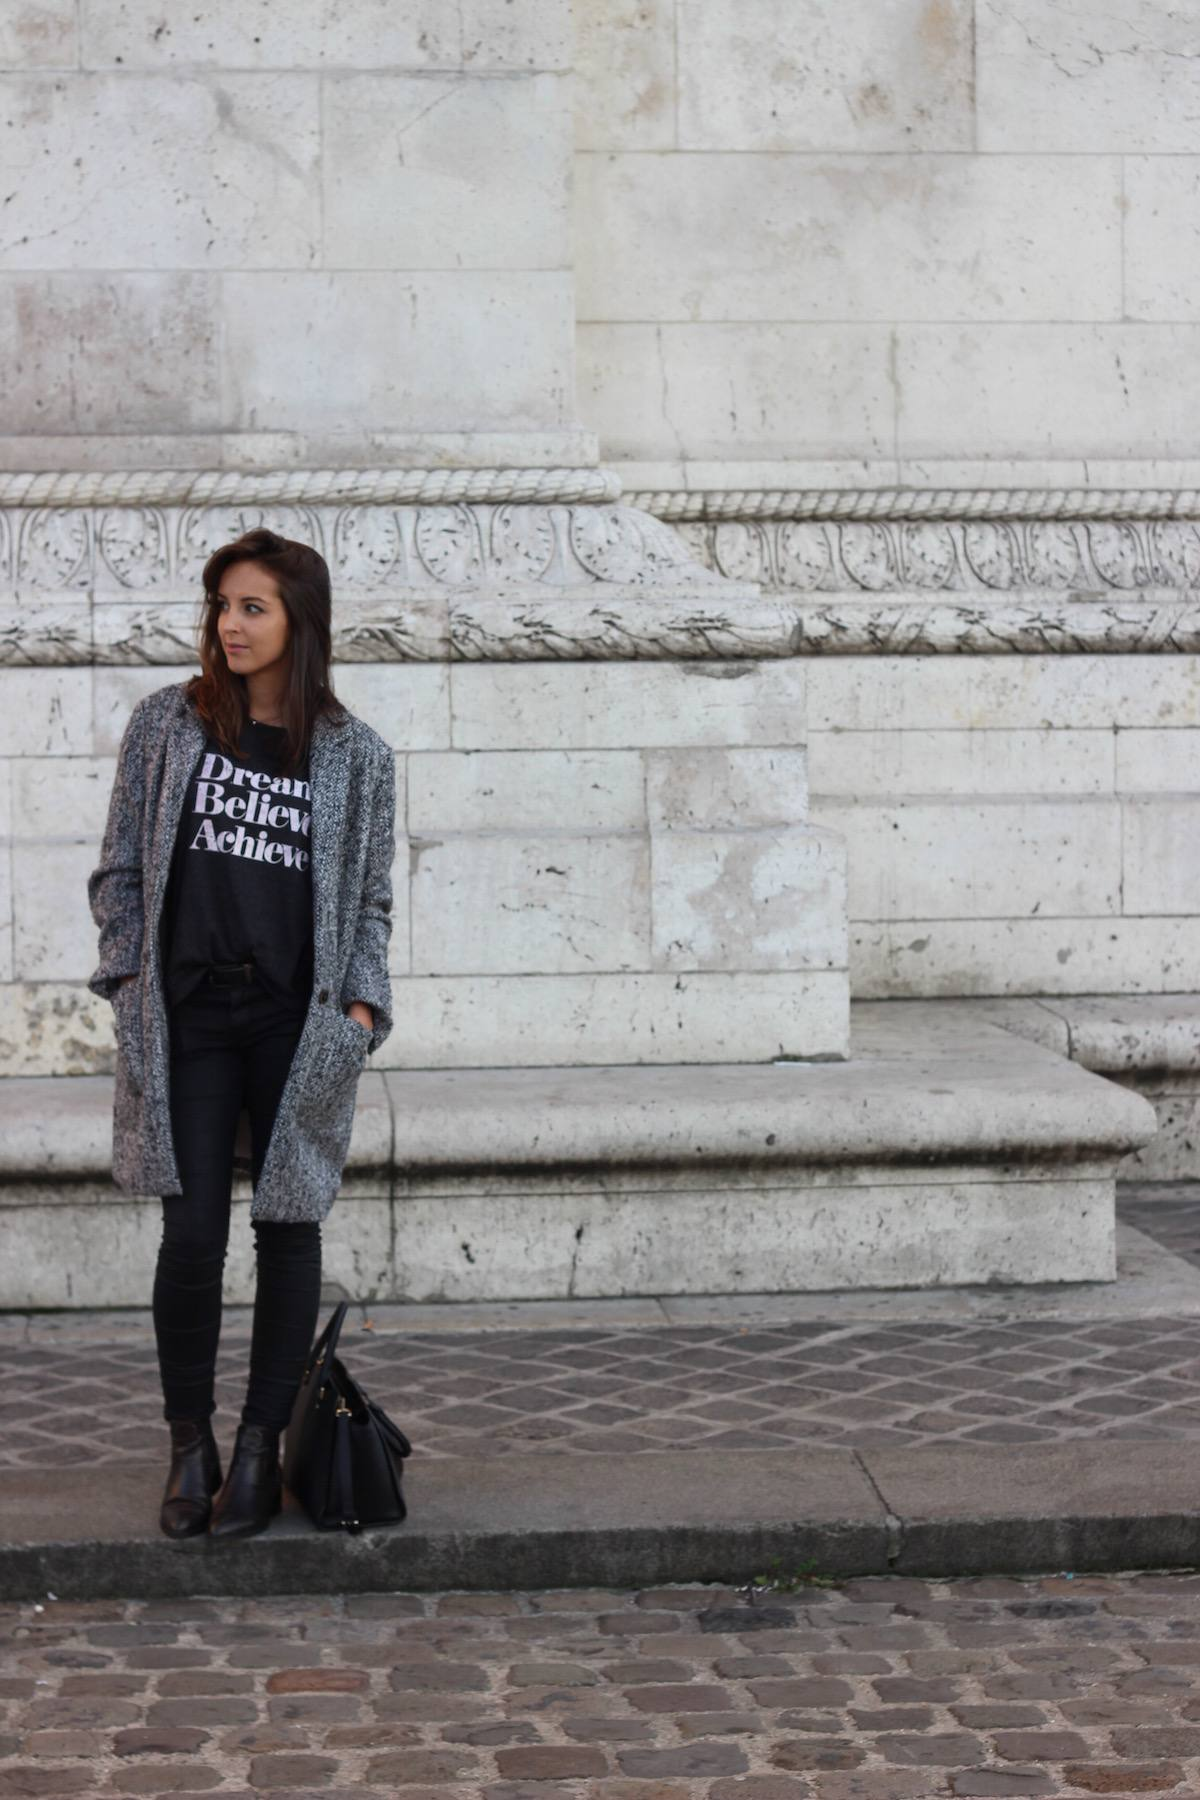 Paris - Dream Believe Achieve - Blog Mode Nolwenn C 9